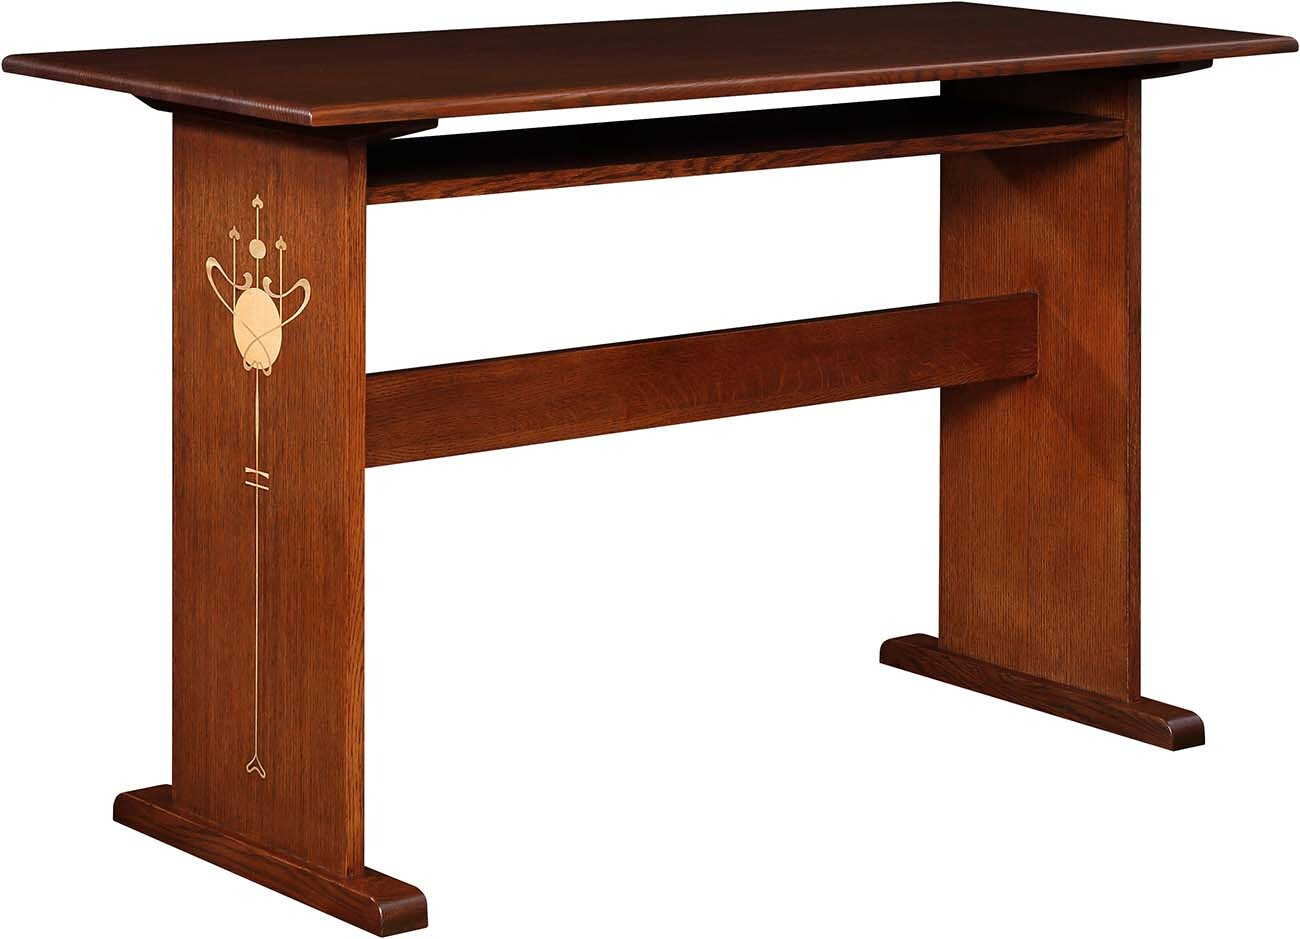 2021 Collector Edition Harvey Ellis Console Desk Mission Collection Stickley Furniture